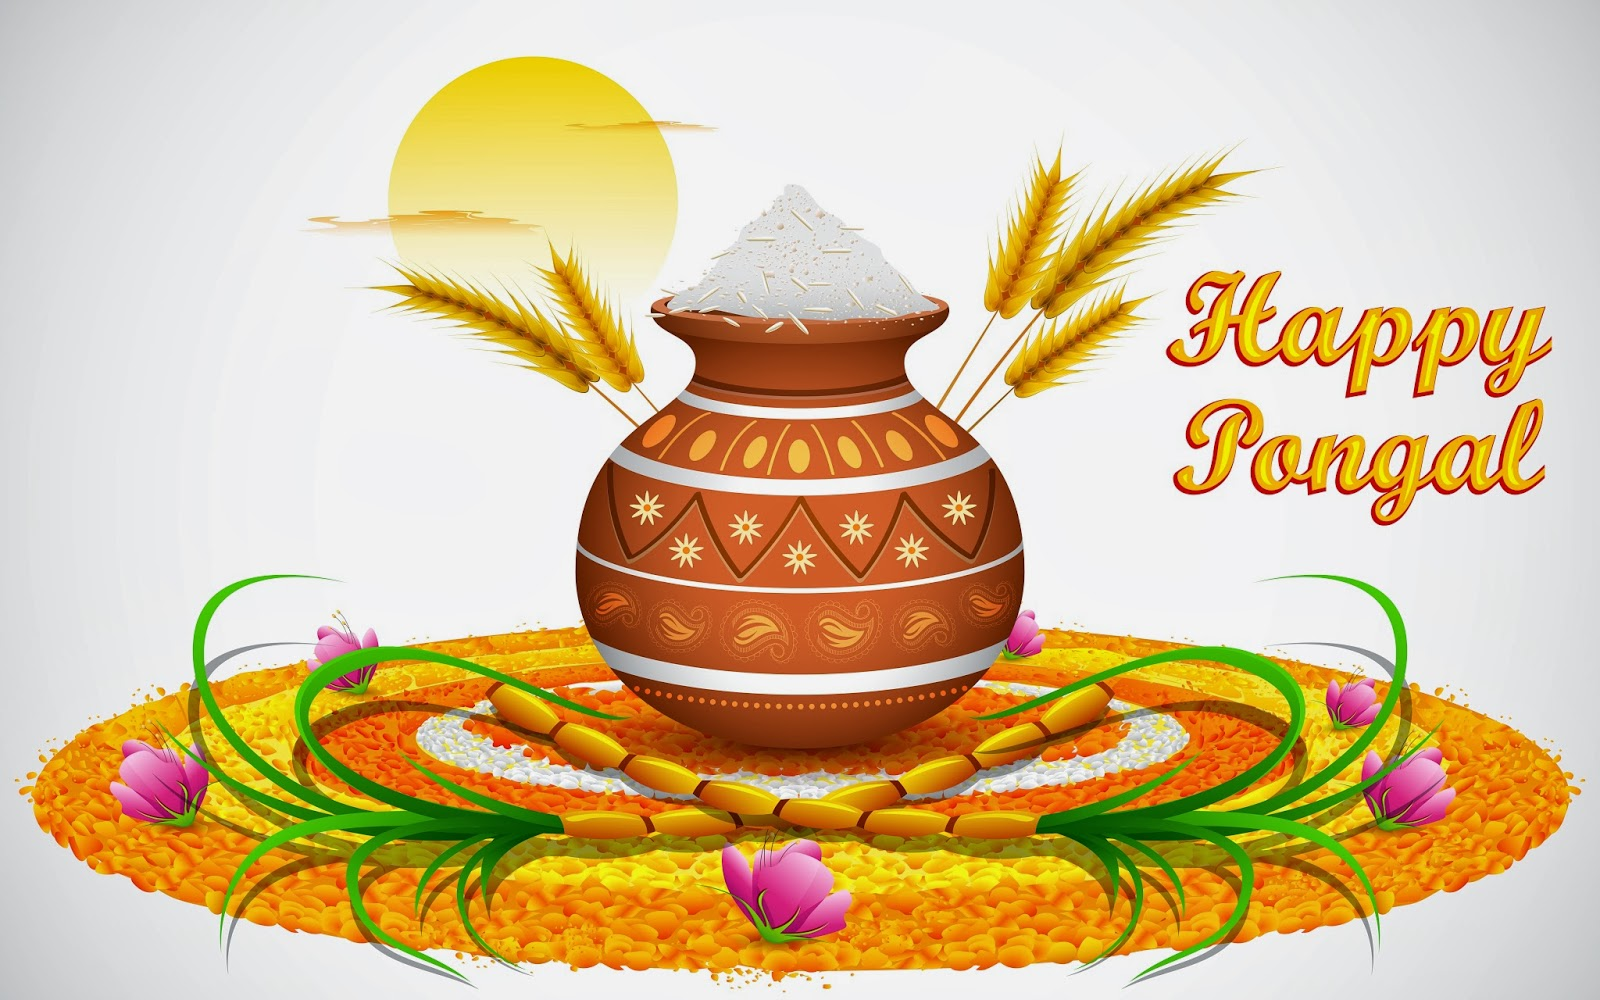 happy-sankranti-hd-images-and-wallpapers-naveengfx.com